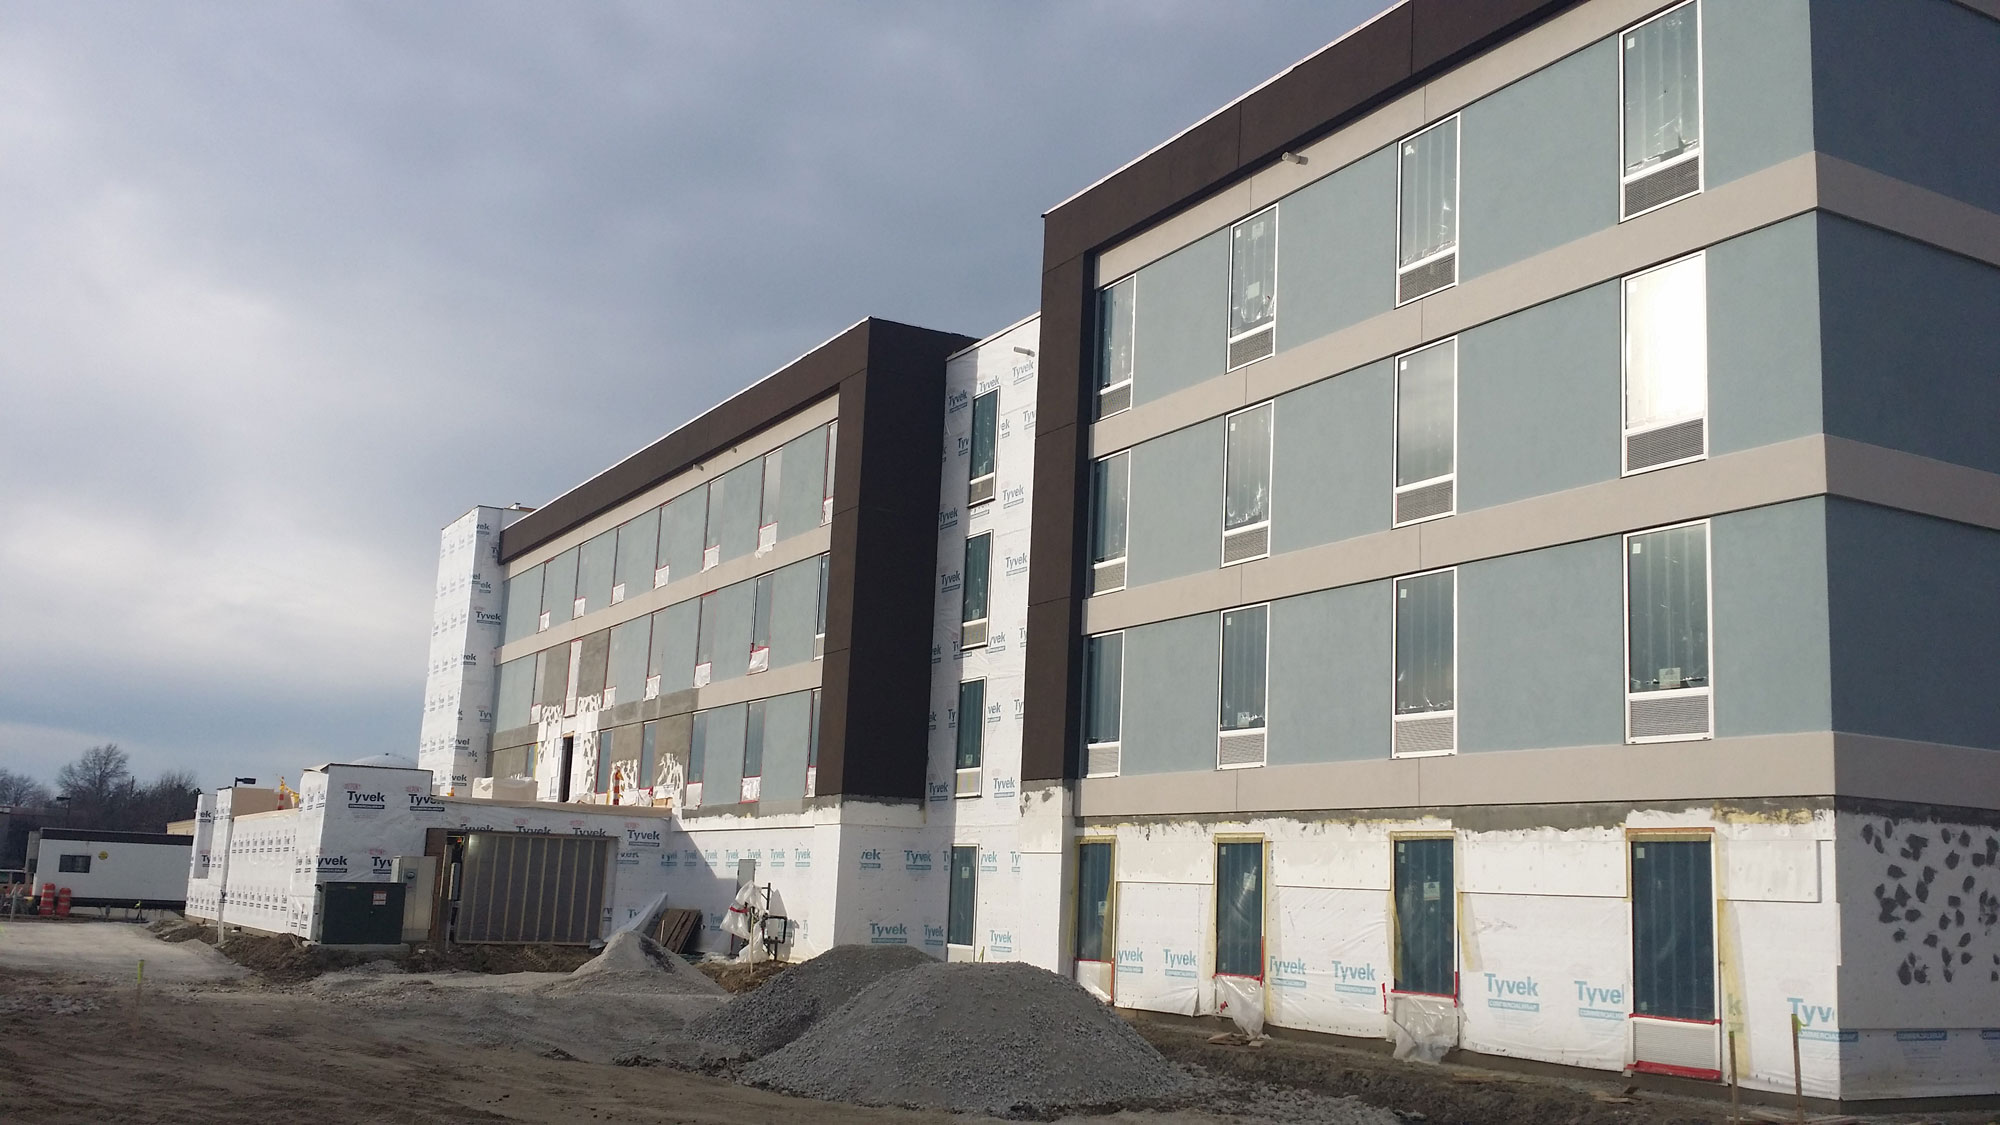 Home2 Suites By Hilton Beachwood Oh A 91 Room 4 Hotel Project Involving Construction Opening Spring Of 2016